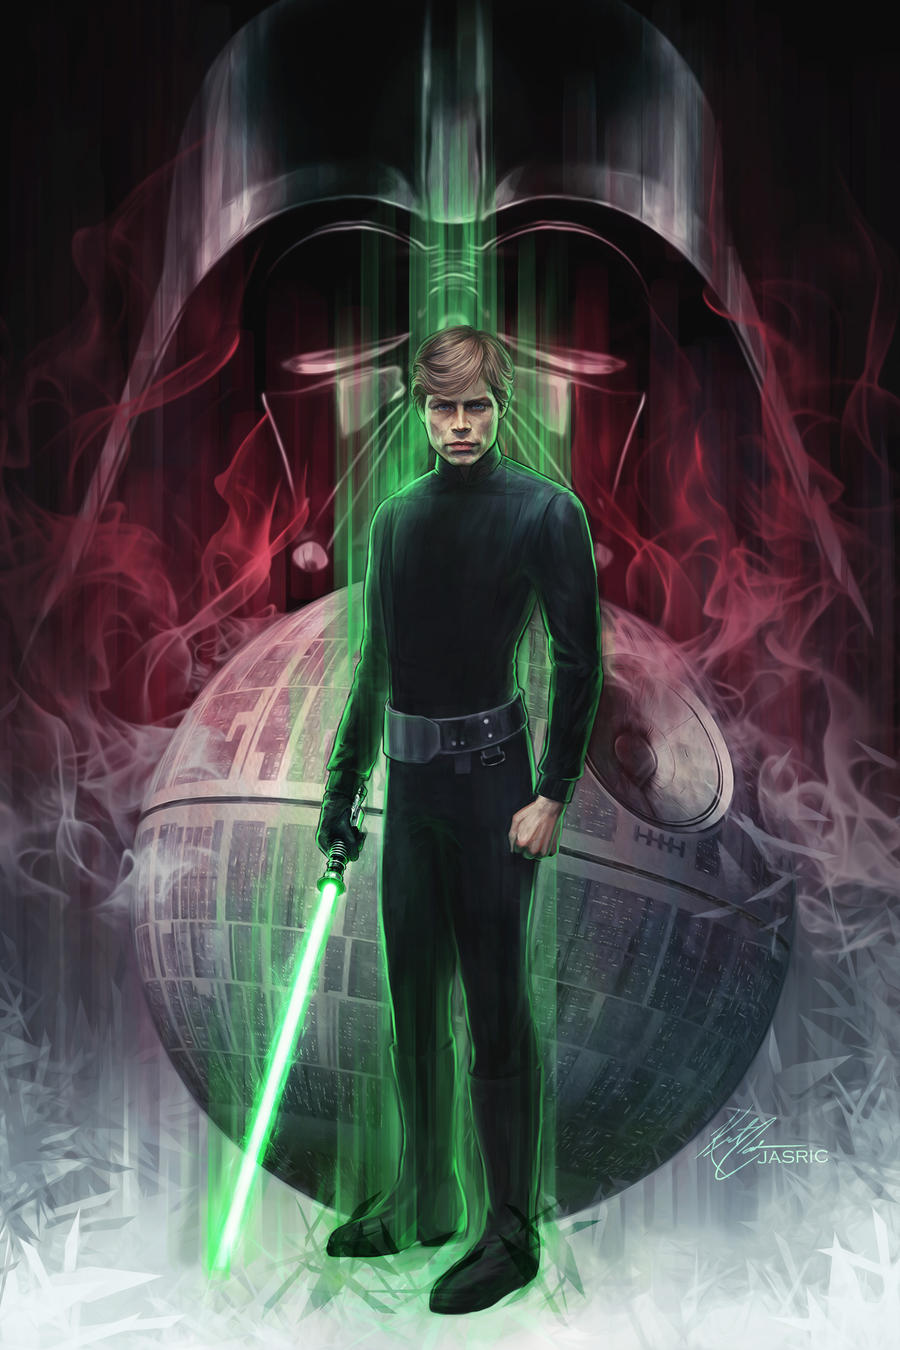 Return of the Jedi by jasric